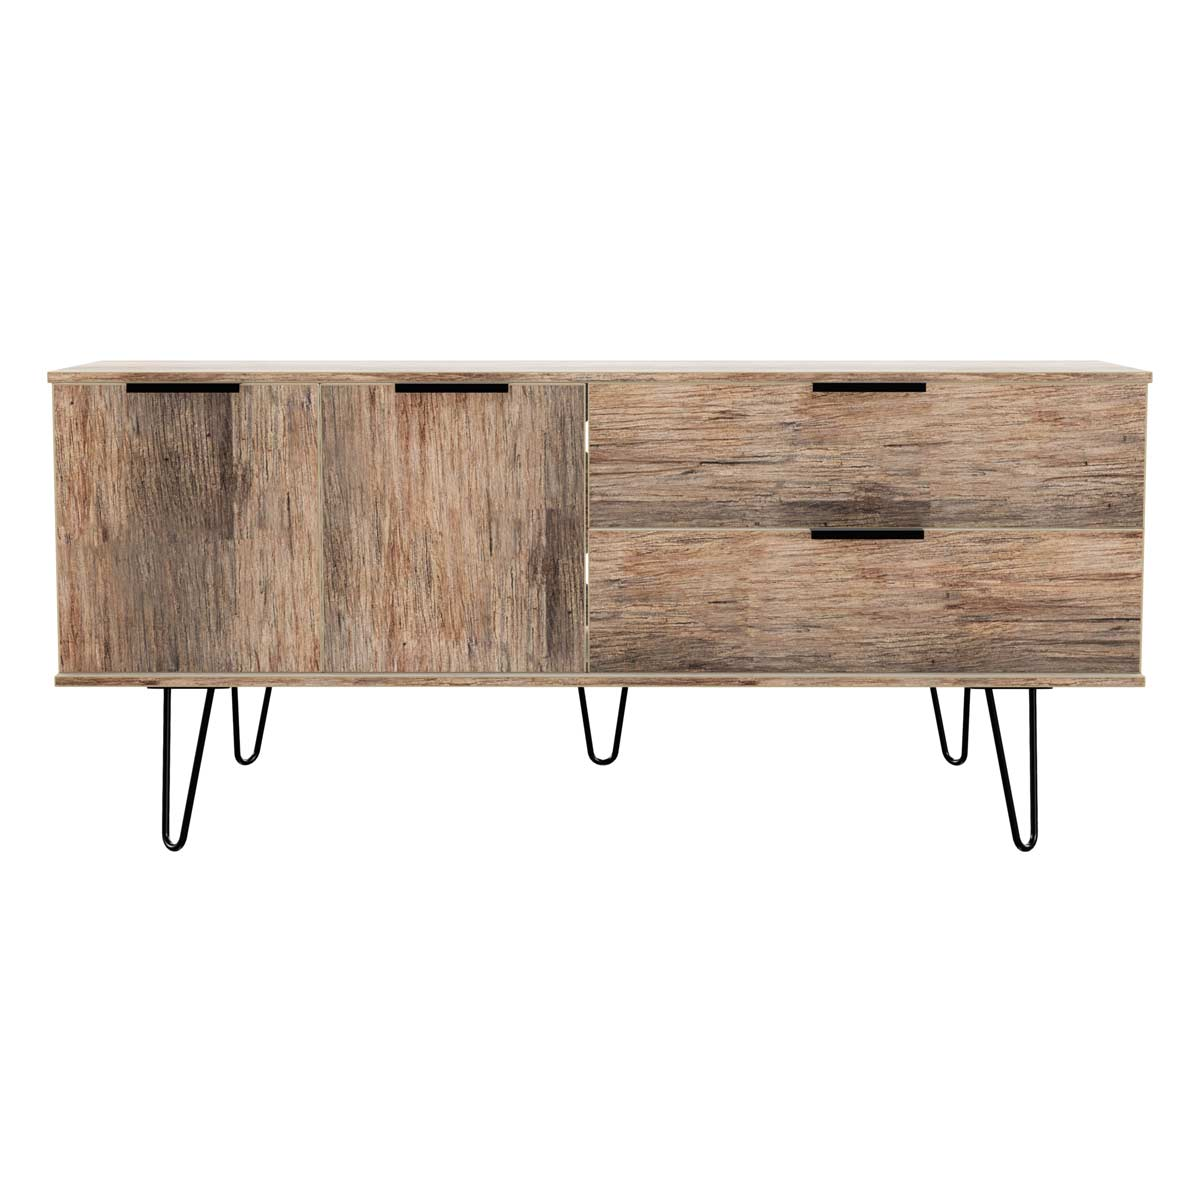 Hirato Ready Assembled Wide Sideboard Vintage Oak Effect With Black Metal Hairpin Legs